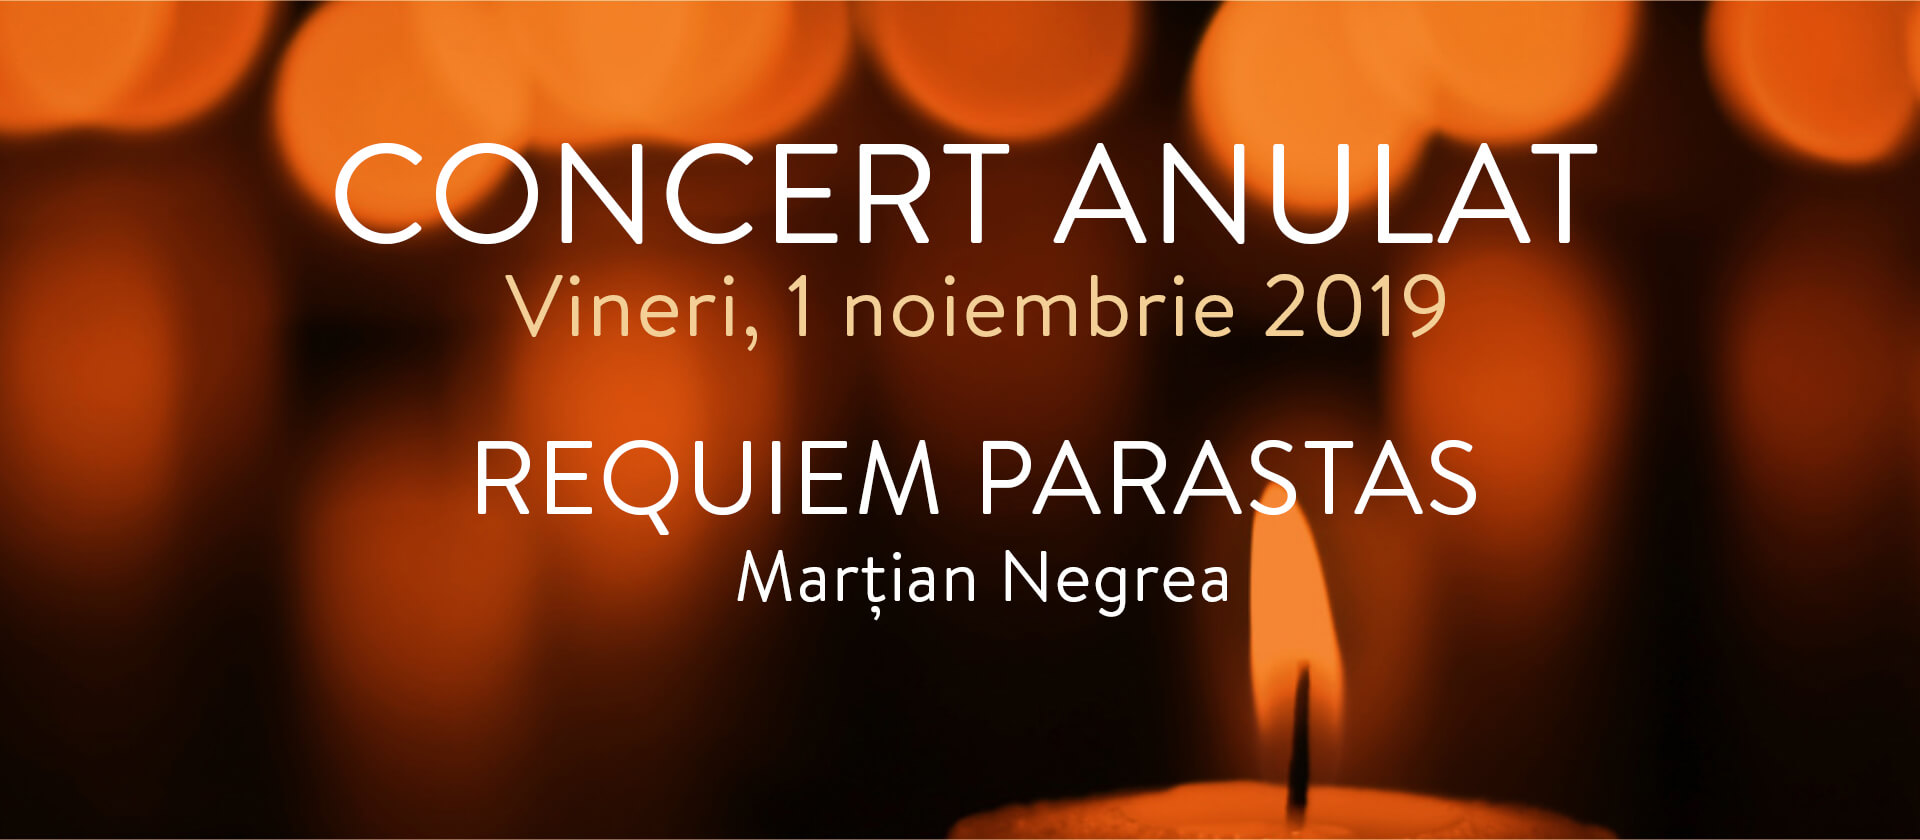 "The Concert ""REQUIEM PARASTAS"" (Friday, November 1st, 2019), has been canceled"